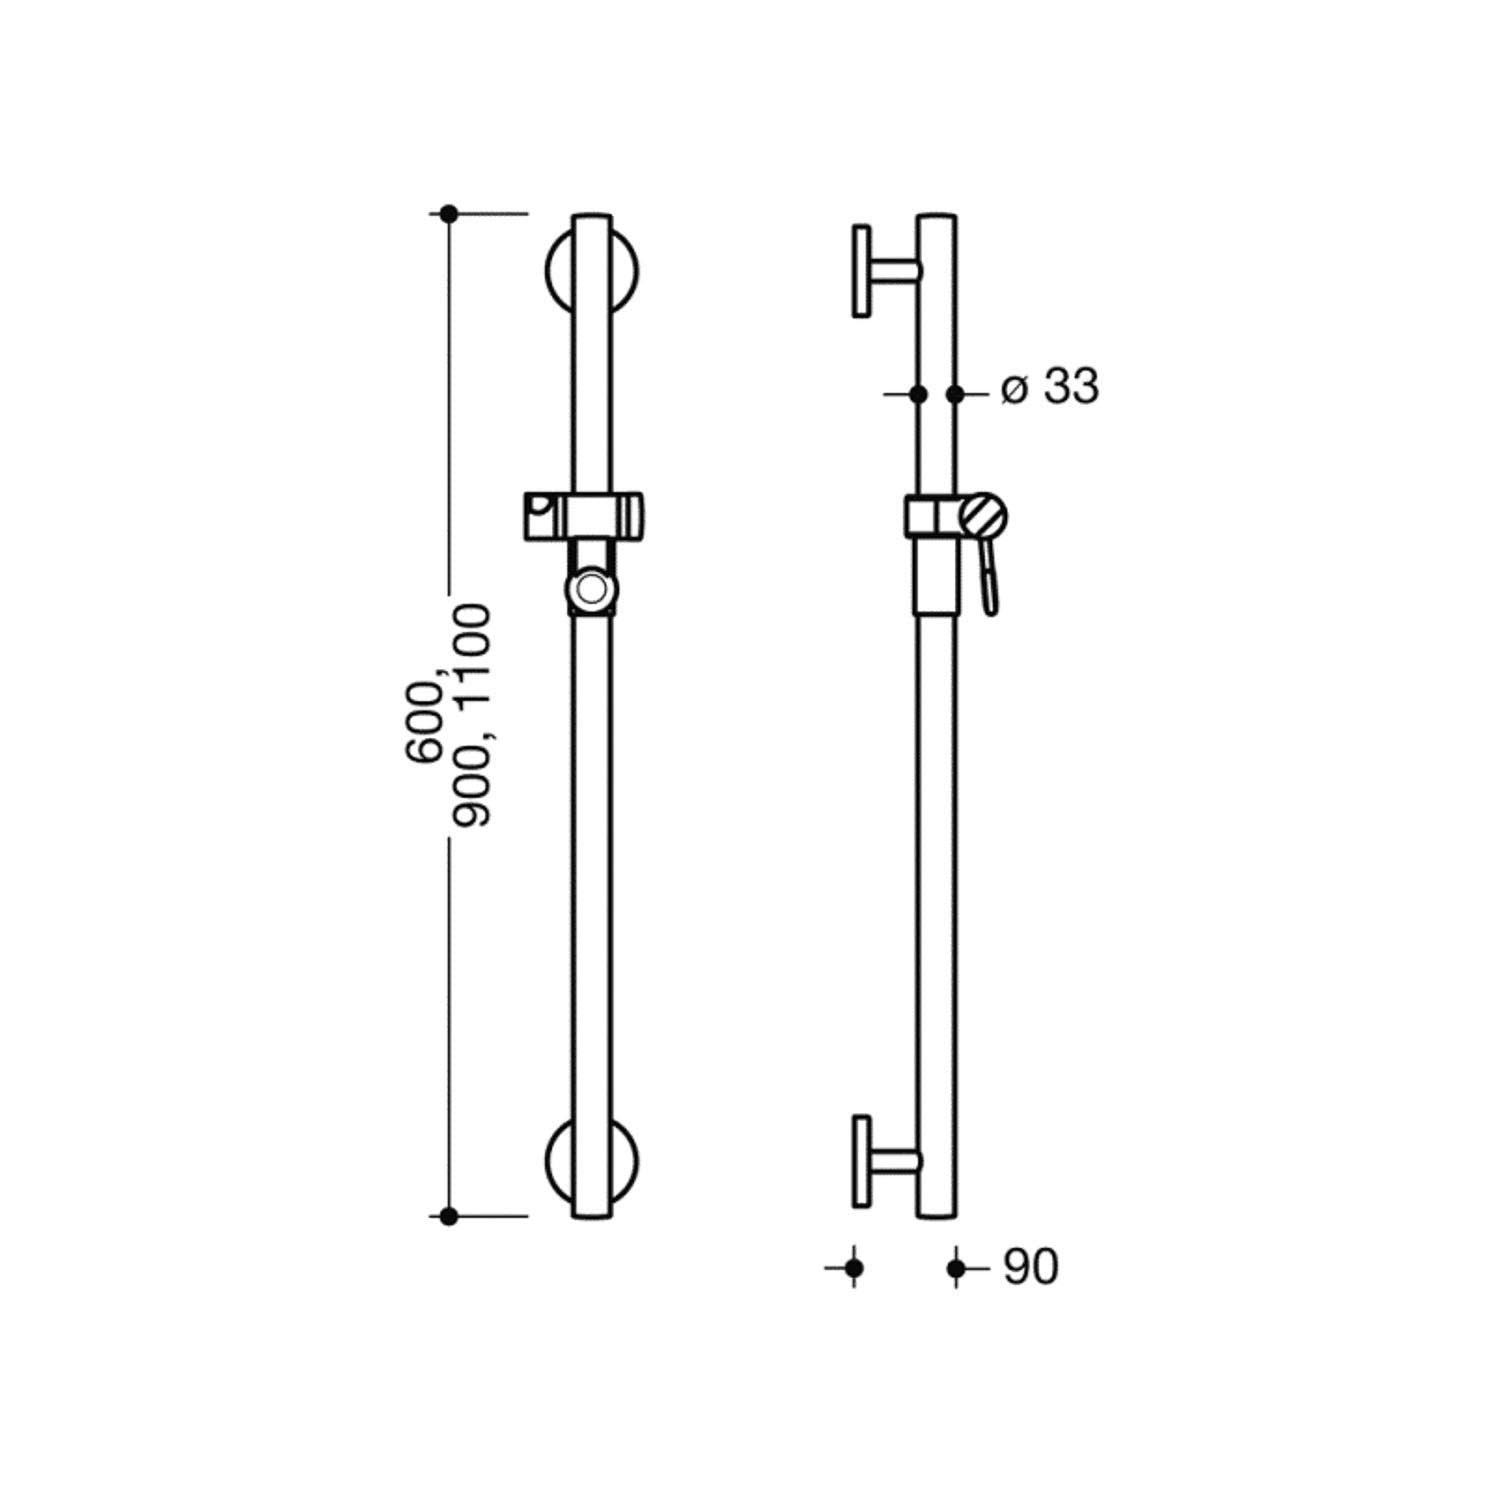 1100mm Circula Supportive Shower Rail with a chrome finish dimensional drawing